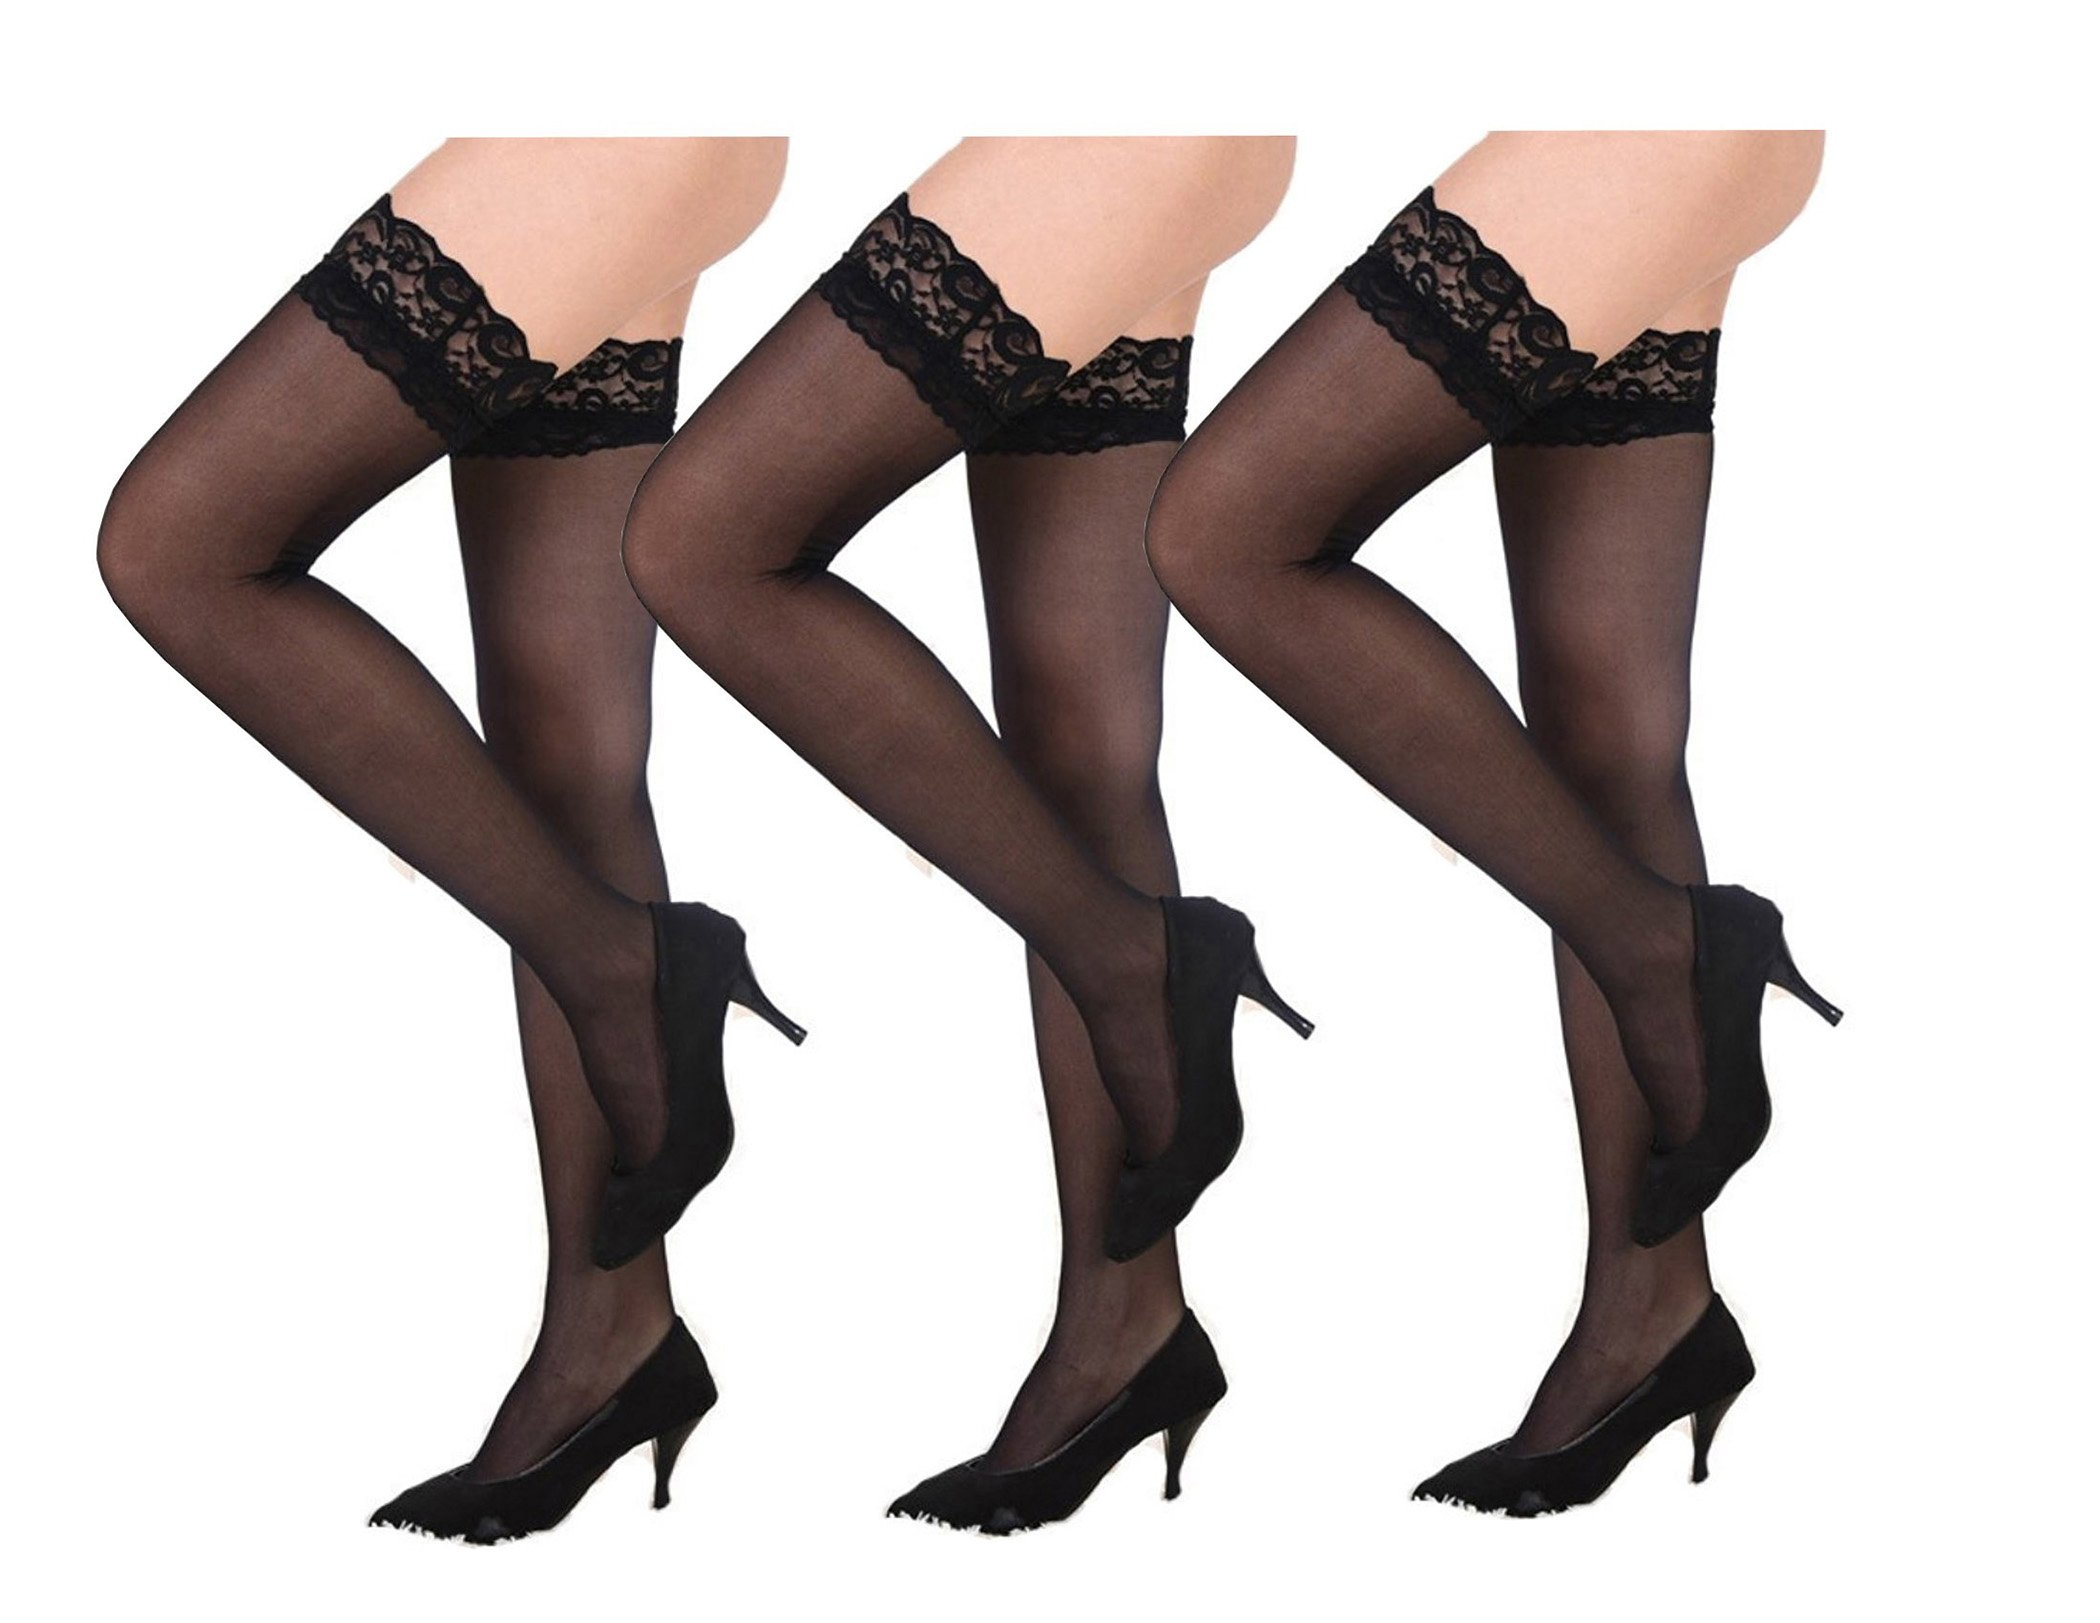 Thigh-High Stockings non-slip Silicone Sheer Lace Top Thigh High Over the Summer Style Sexy Knee Long Stockings (3-Pairs-Black)